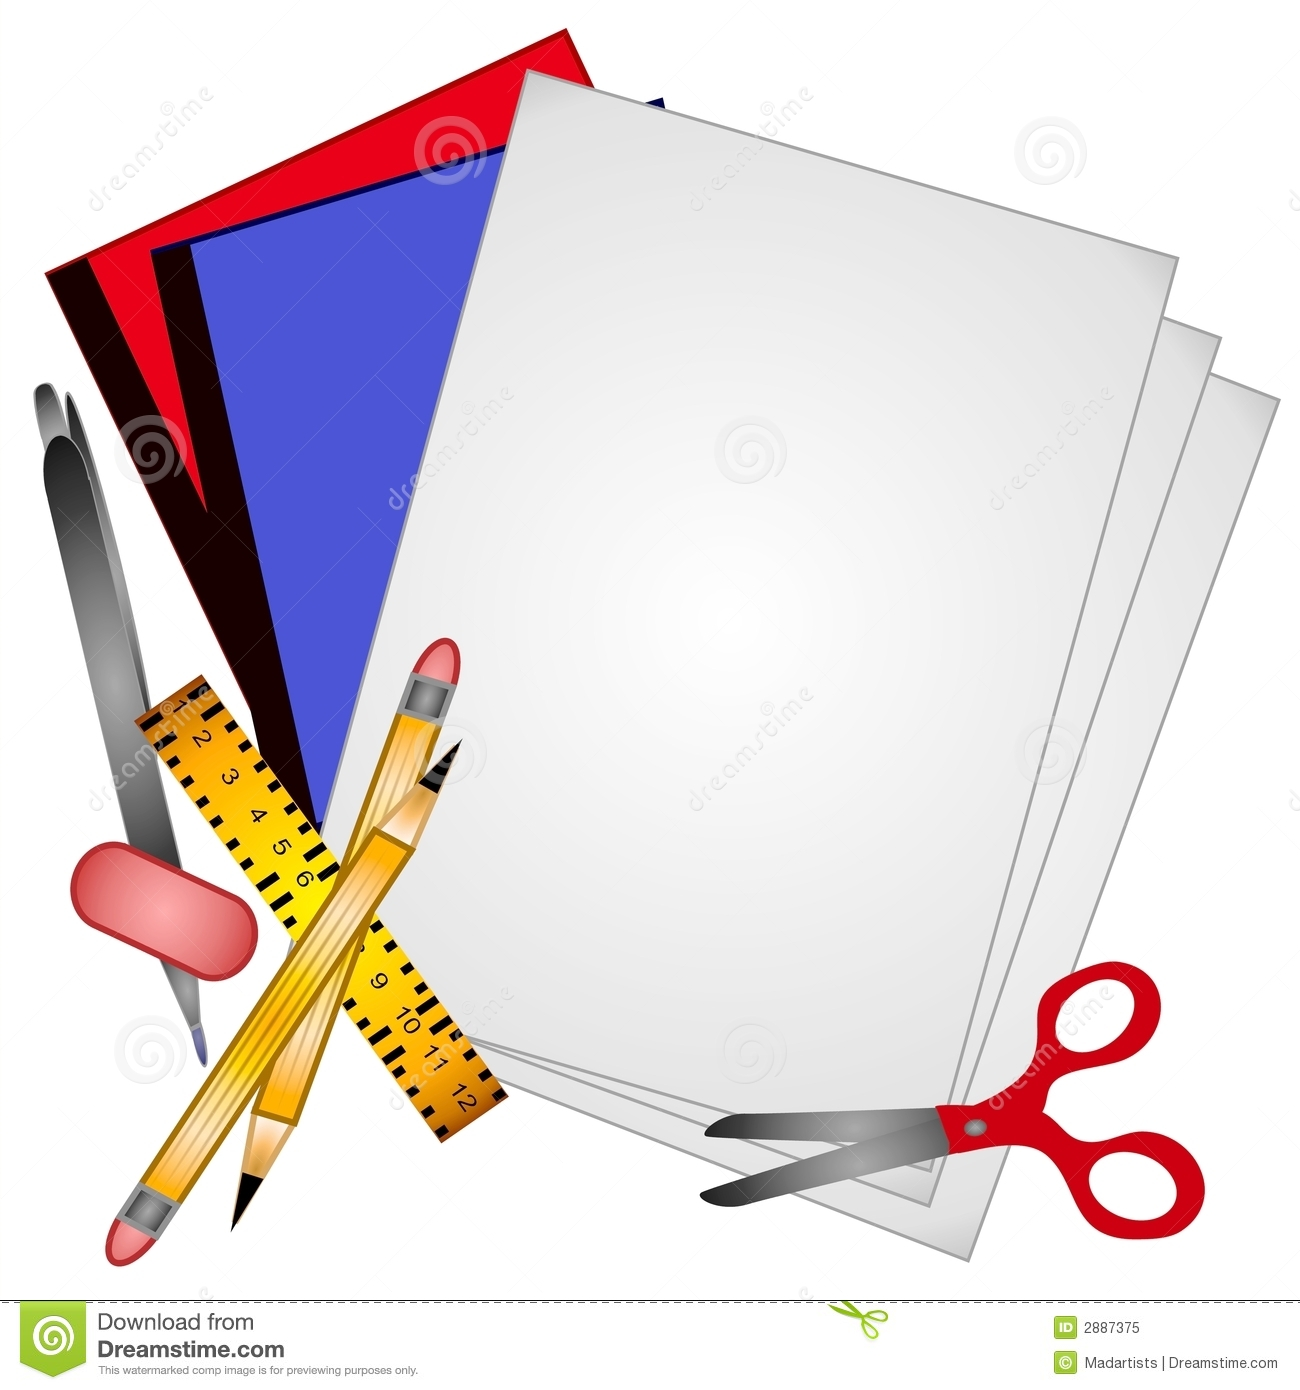 school supplies clip art 3 clipart panda free clipart images rh clipartpanda com cleaning supplies clipart school supplies clipart free